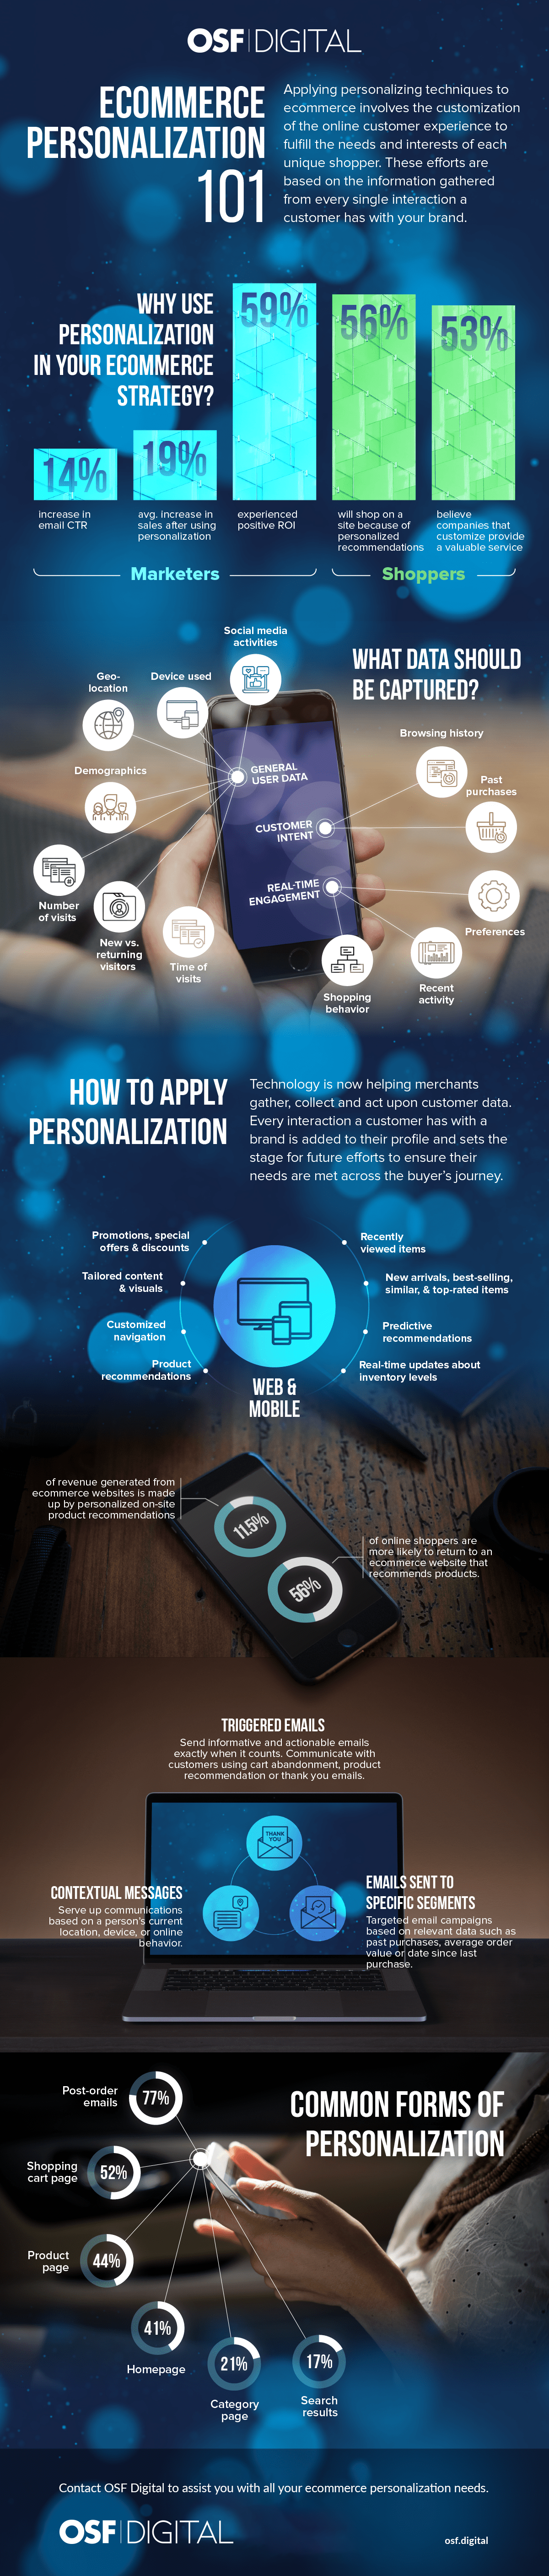 Infographic-Ecommerce-Personalization-101-3